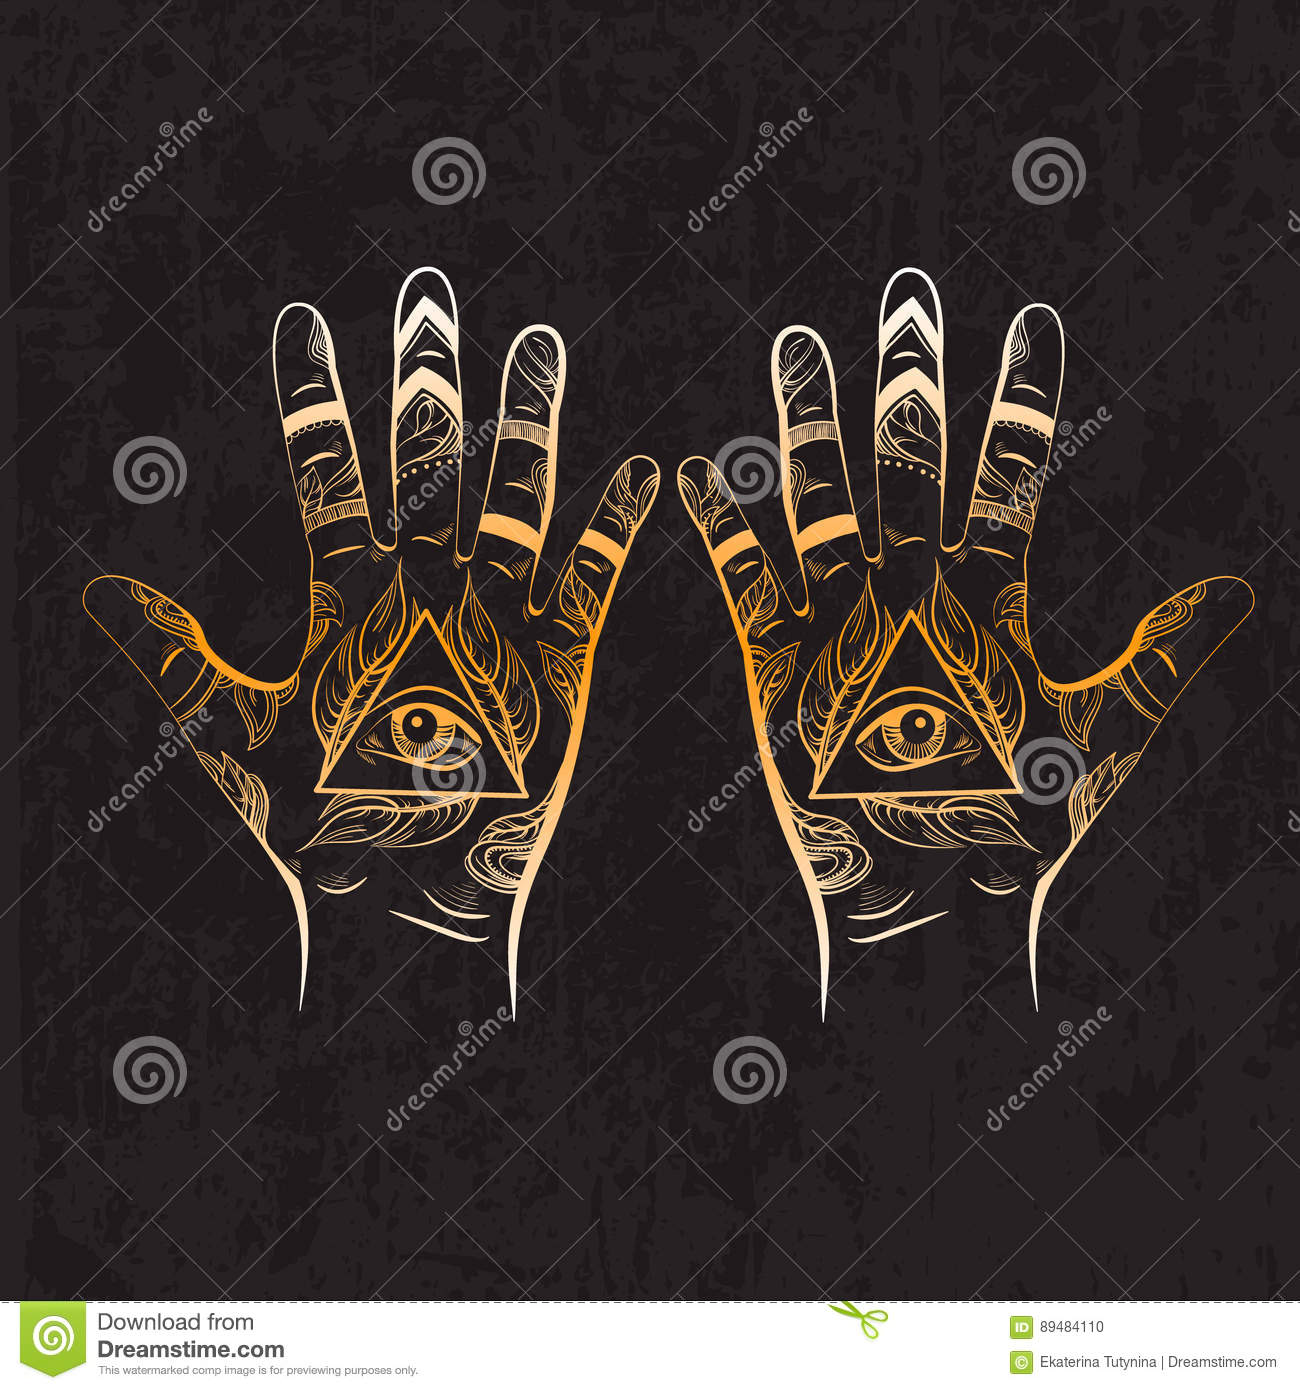 Illusitration of hand with All seeing eye pyramid symbol.